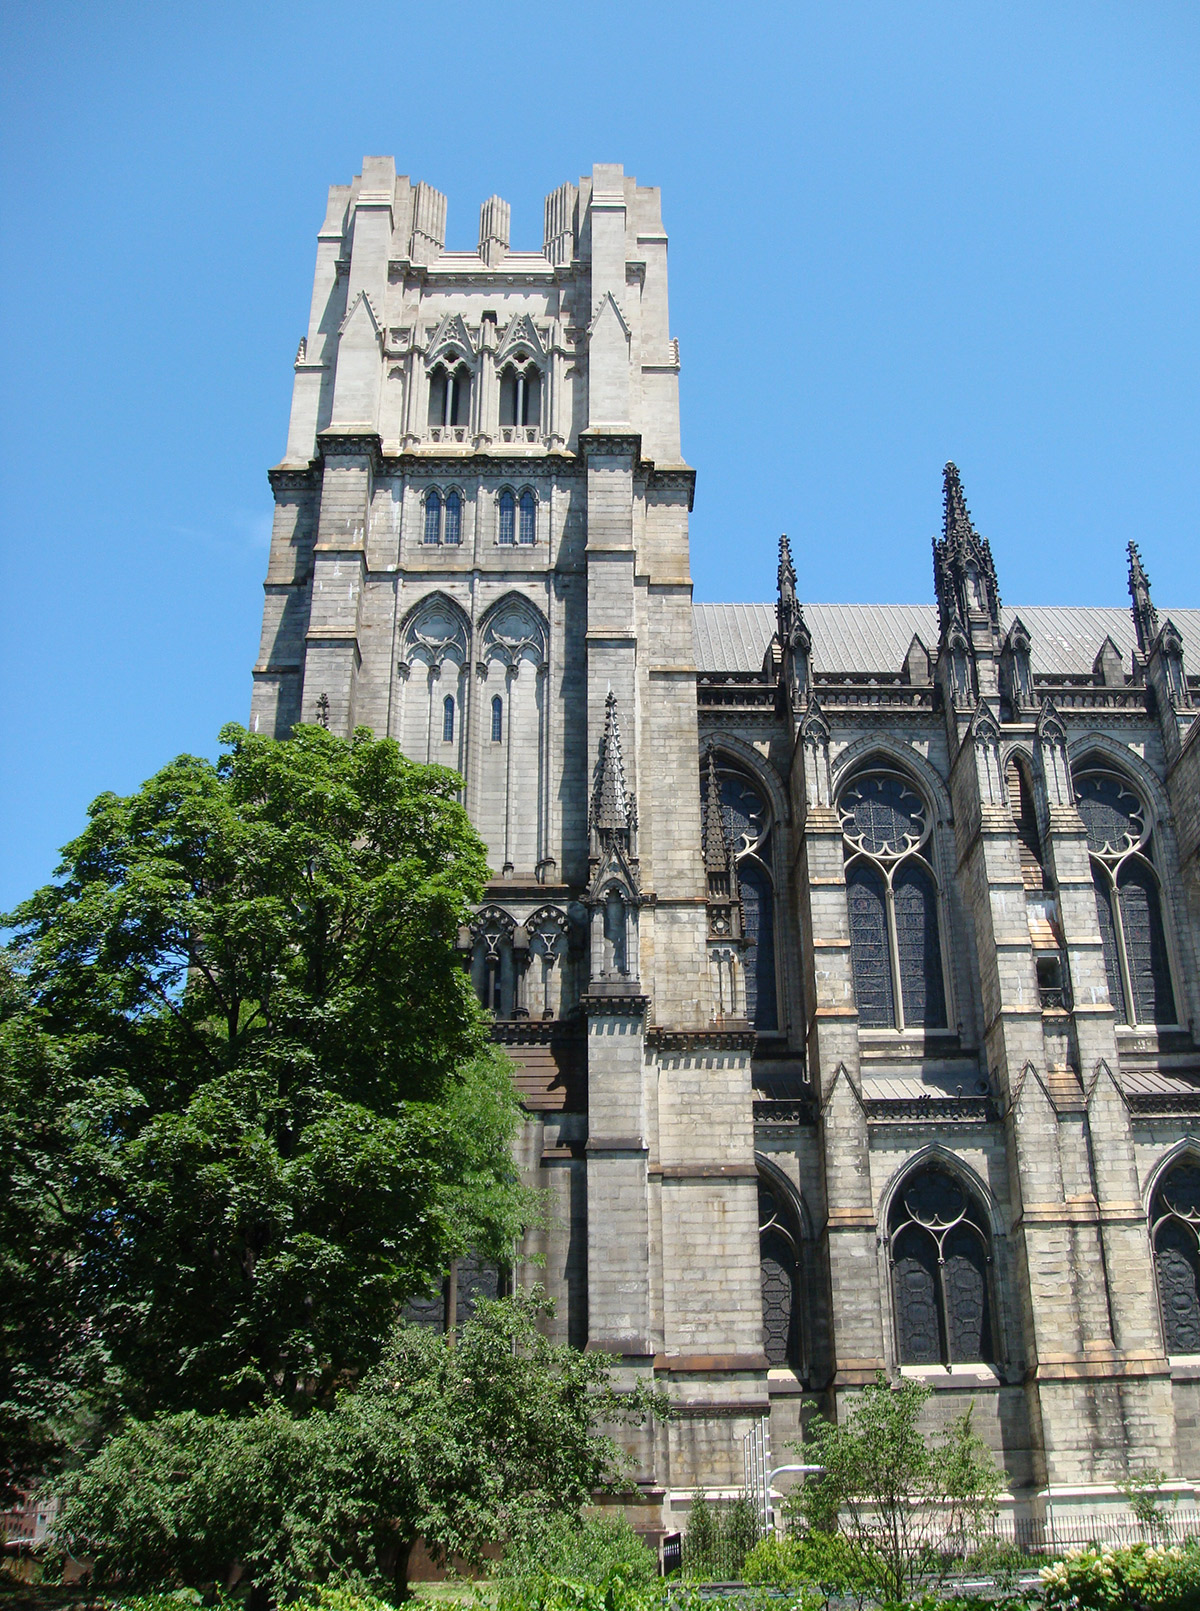 The Cathedral School of St. John the Divine